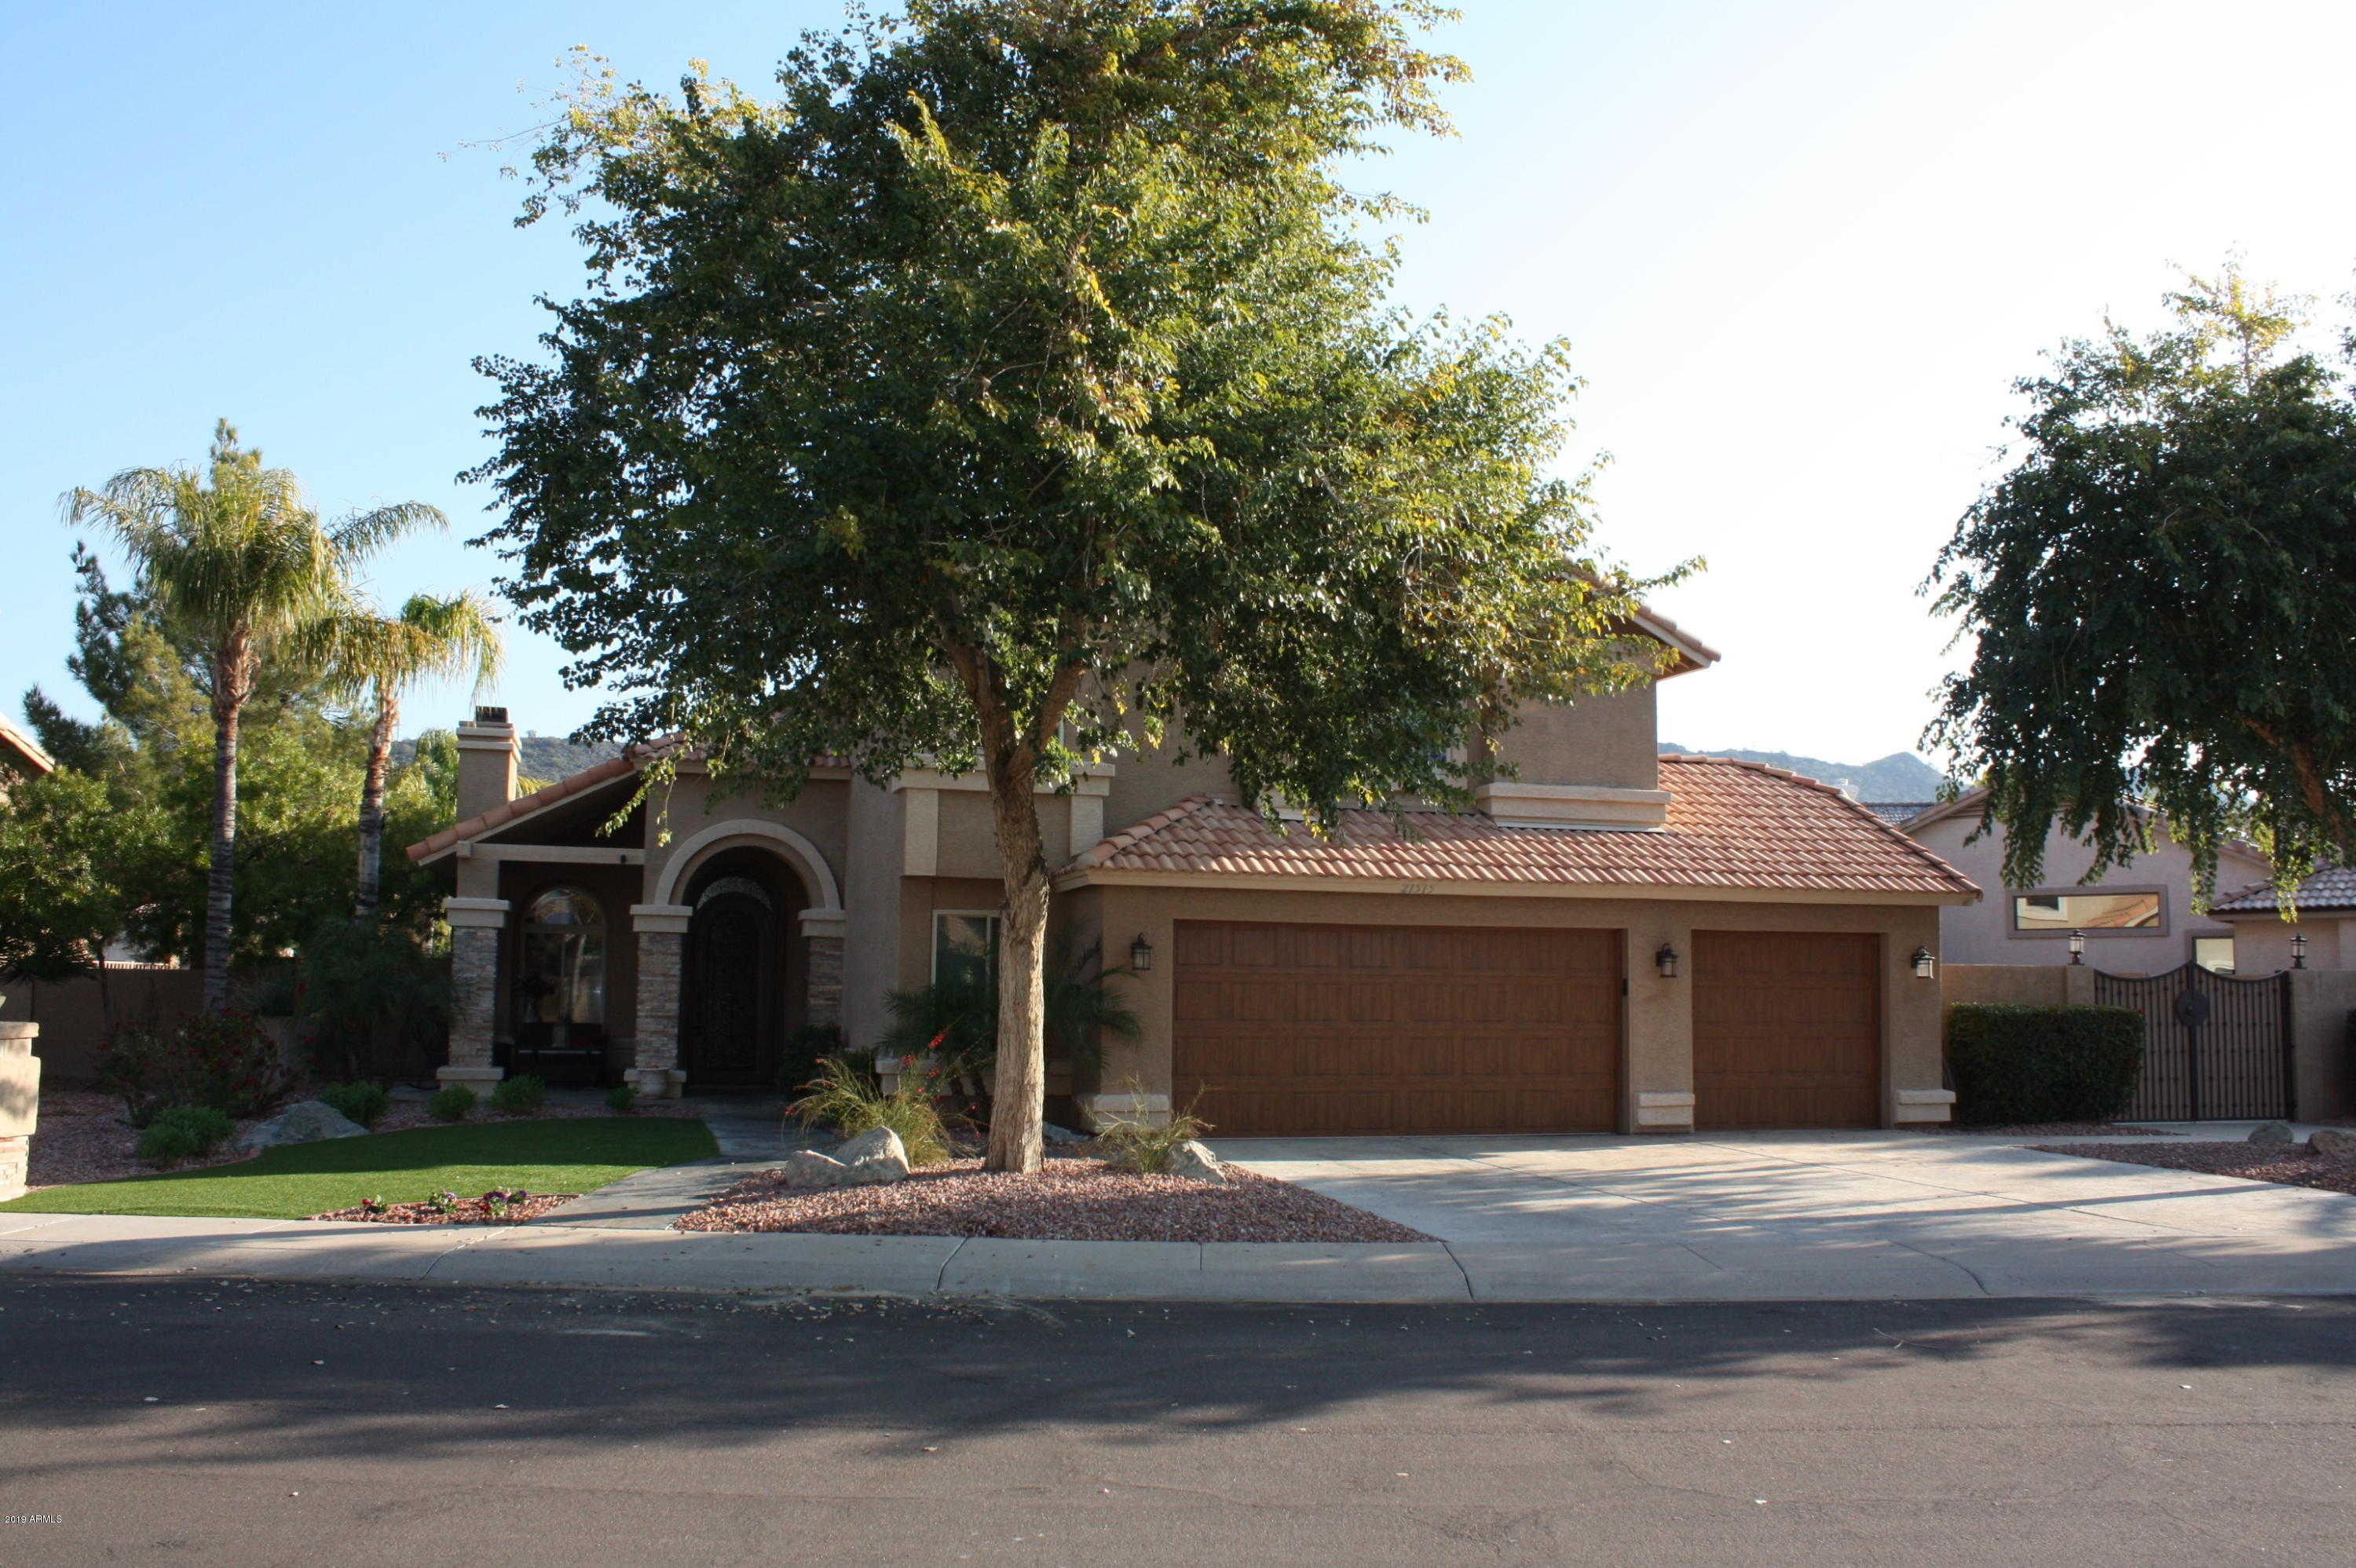 $540,000 - 3Br/3Ba - Home for Sale in Arrowhead Lakes 1 Replat Lt 1-204 A-h J-n P-r, Glendale